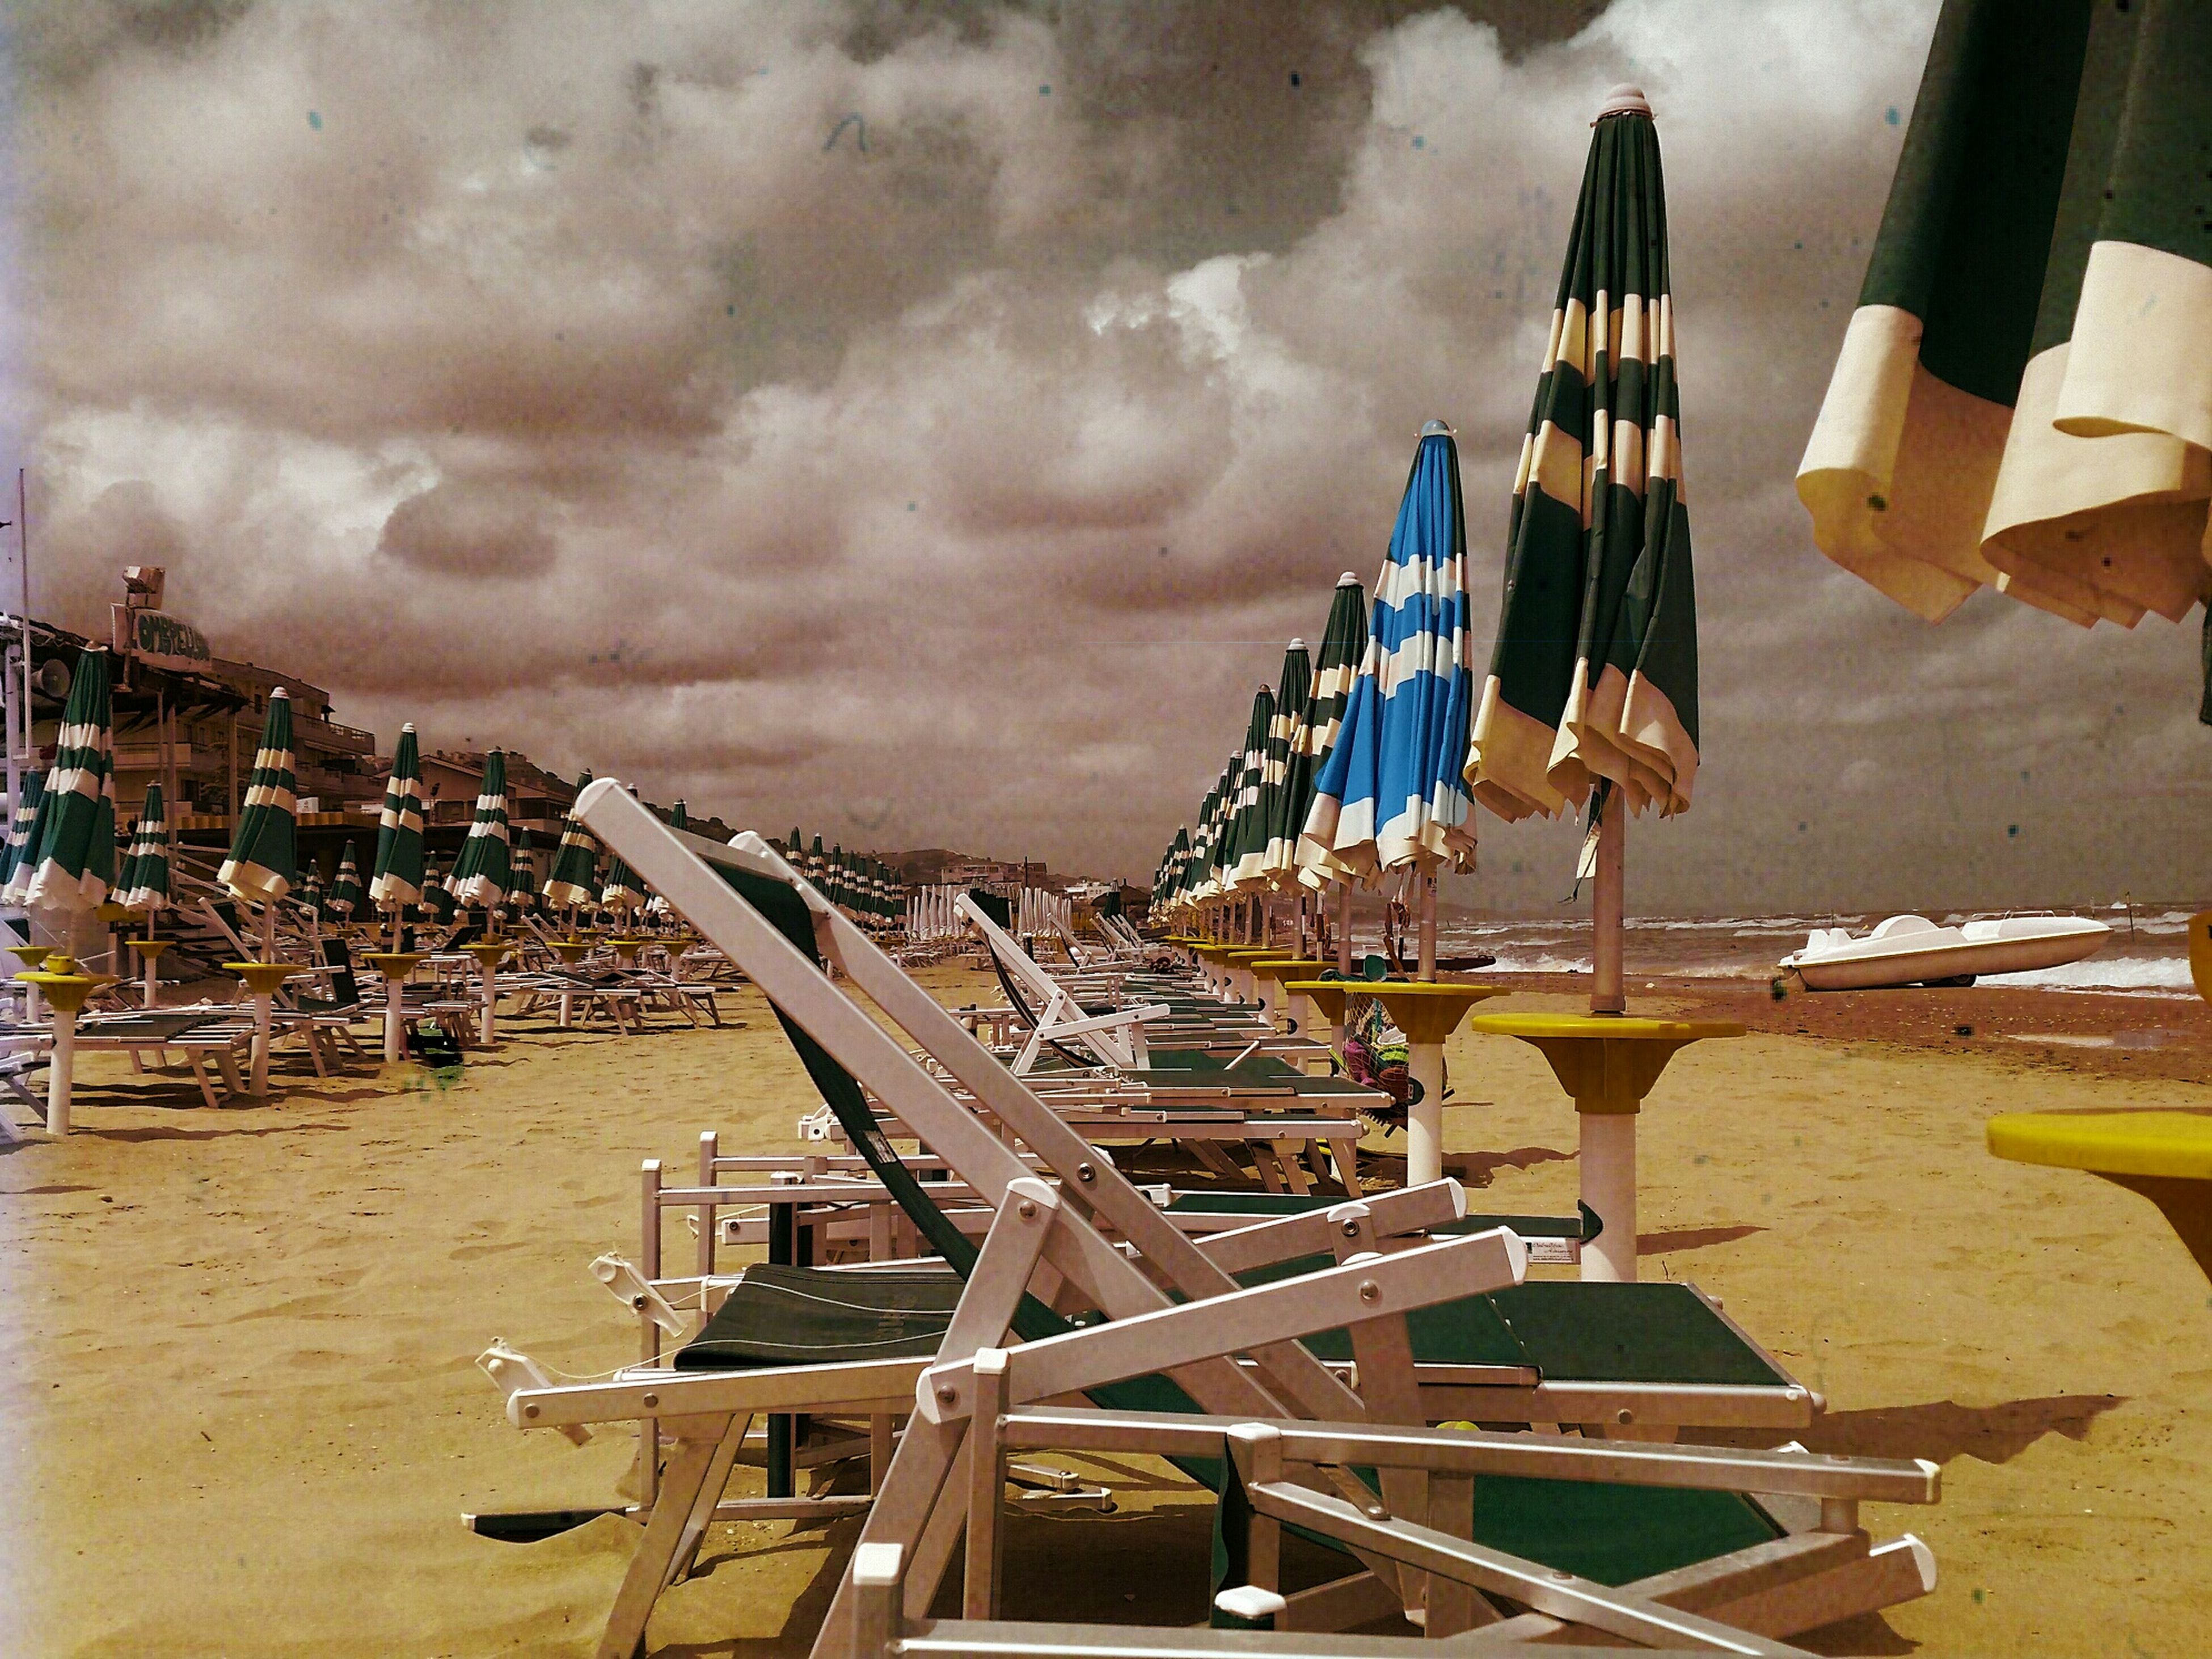 sky, cloud - sky, cloudy, beach, built structure, wood - material, sand, architecture, building exterior, outdoors, no people, cloud, industry, day, sea, absence, weather, construction site, metal, shore